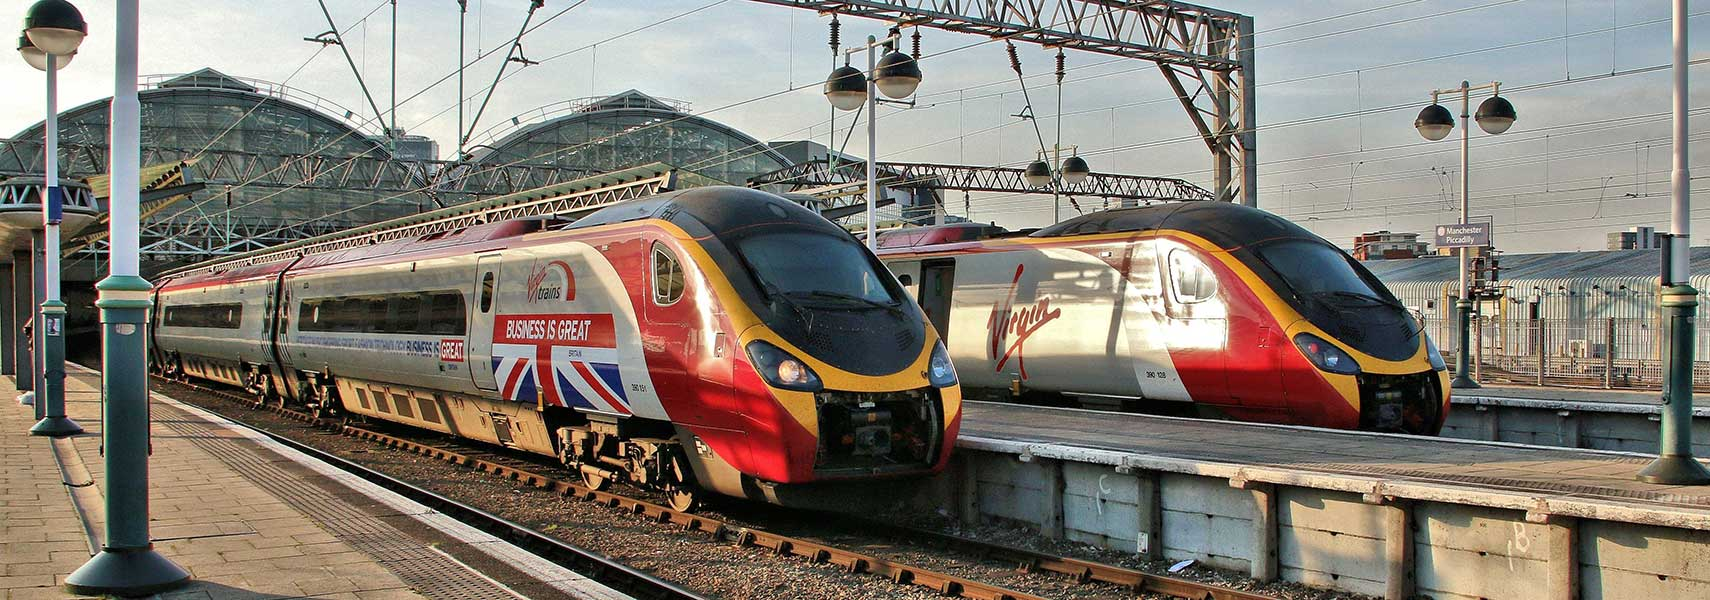 Virgin Trains at Manchester Piccadilly station. Manchester, England